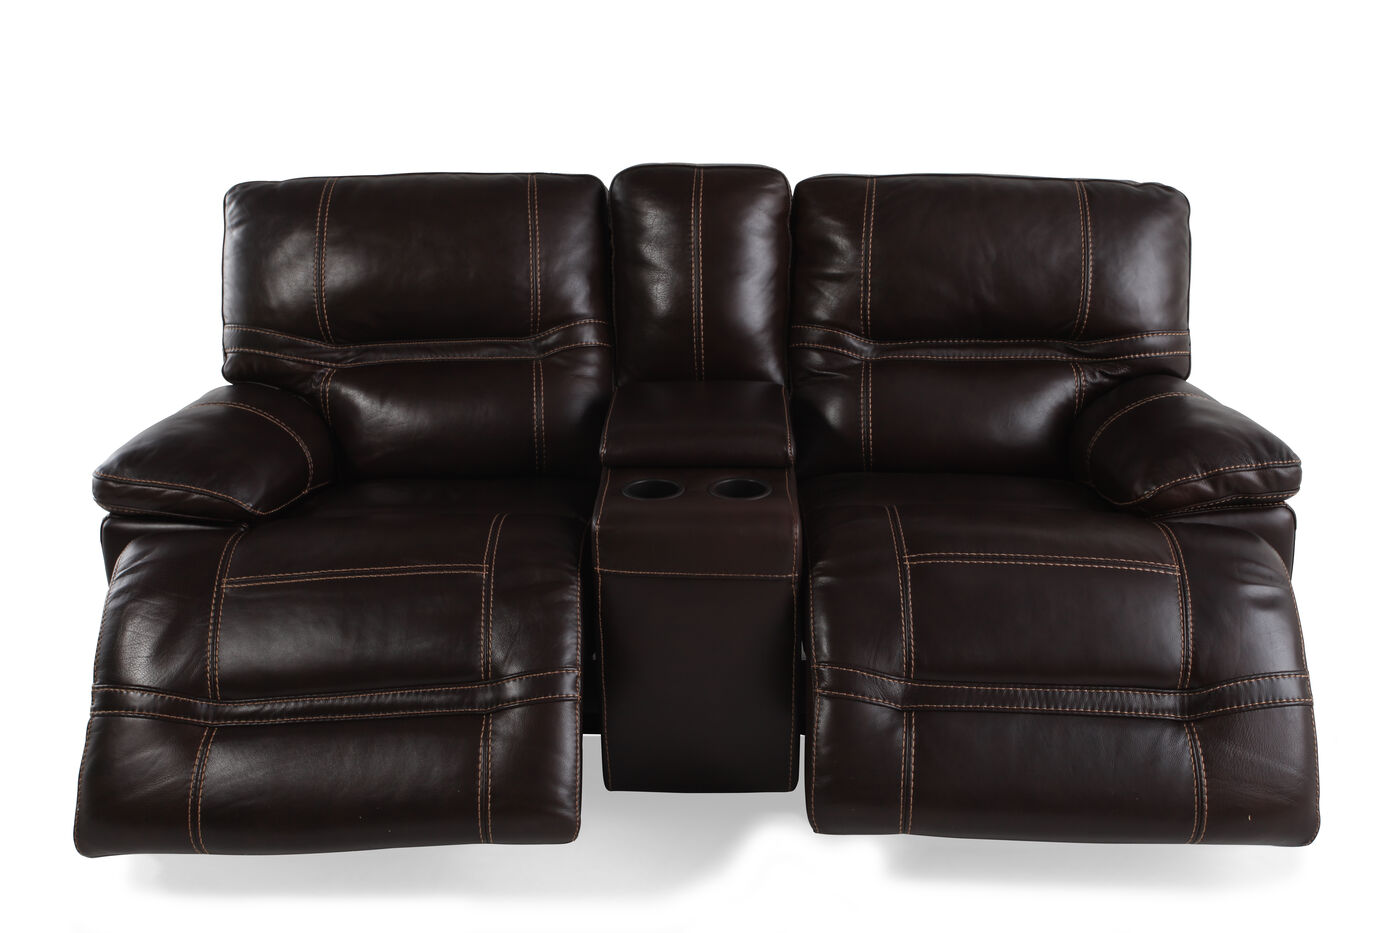 Reclining Contemporary 76 Loveseat Glider With Console In